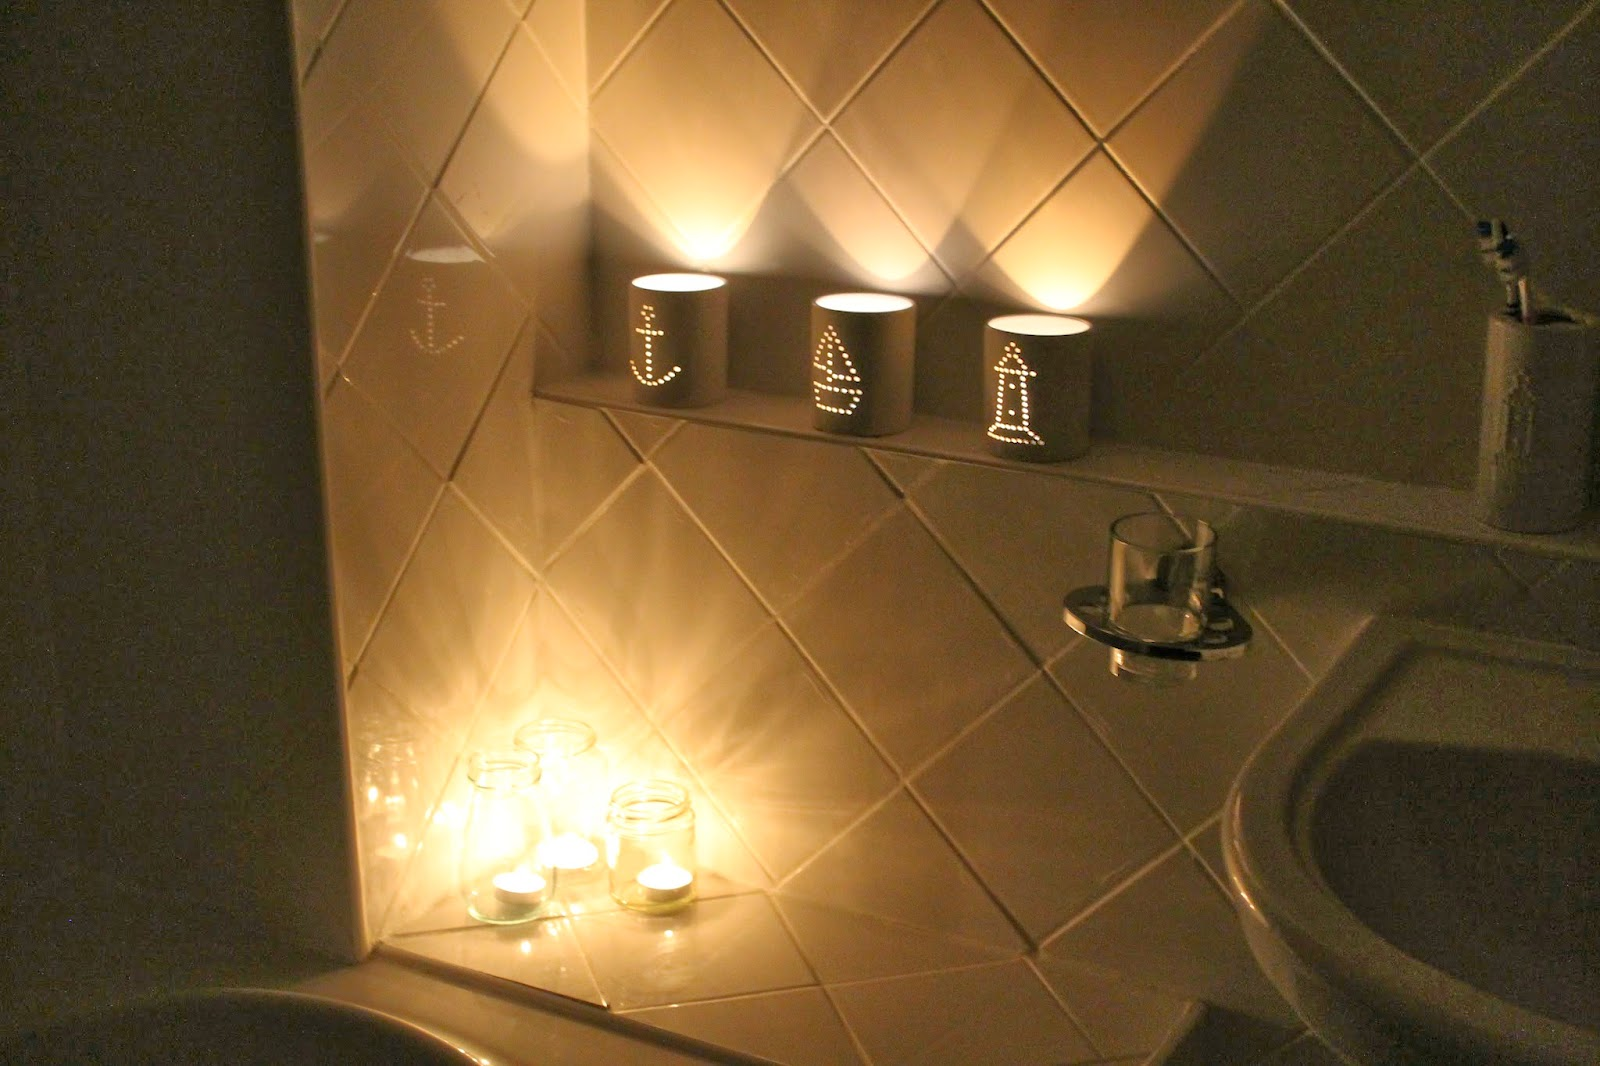 Nautical Candles shining in the bathroom